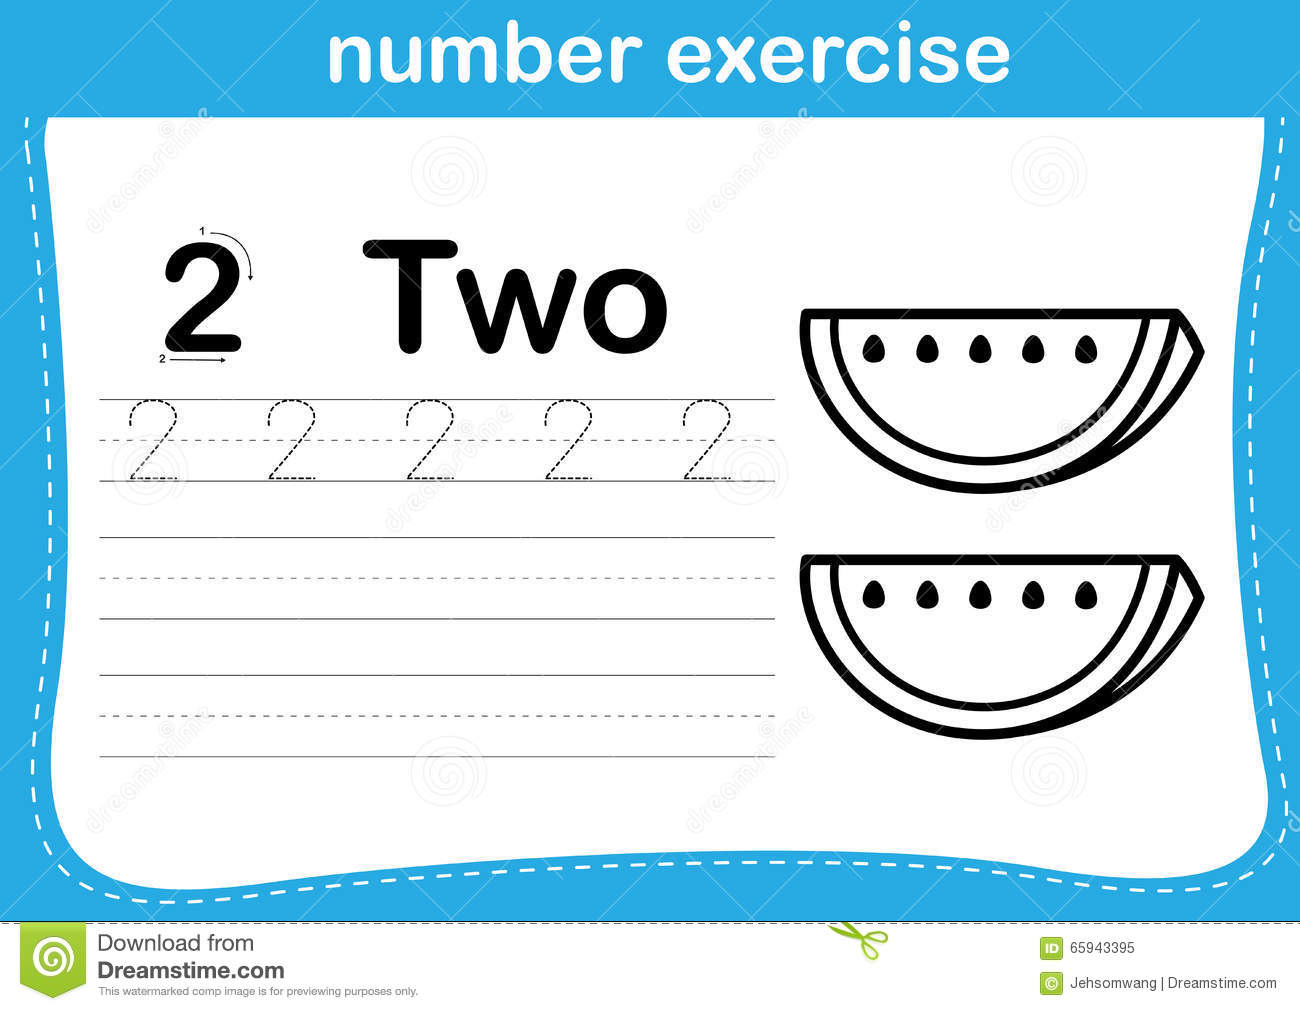 Number Exercise With Cartoon Coloring Book Illustration Stock Vector